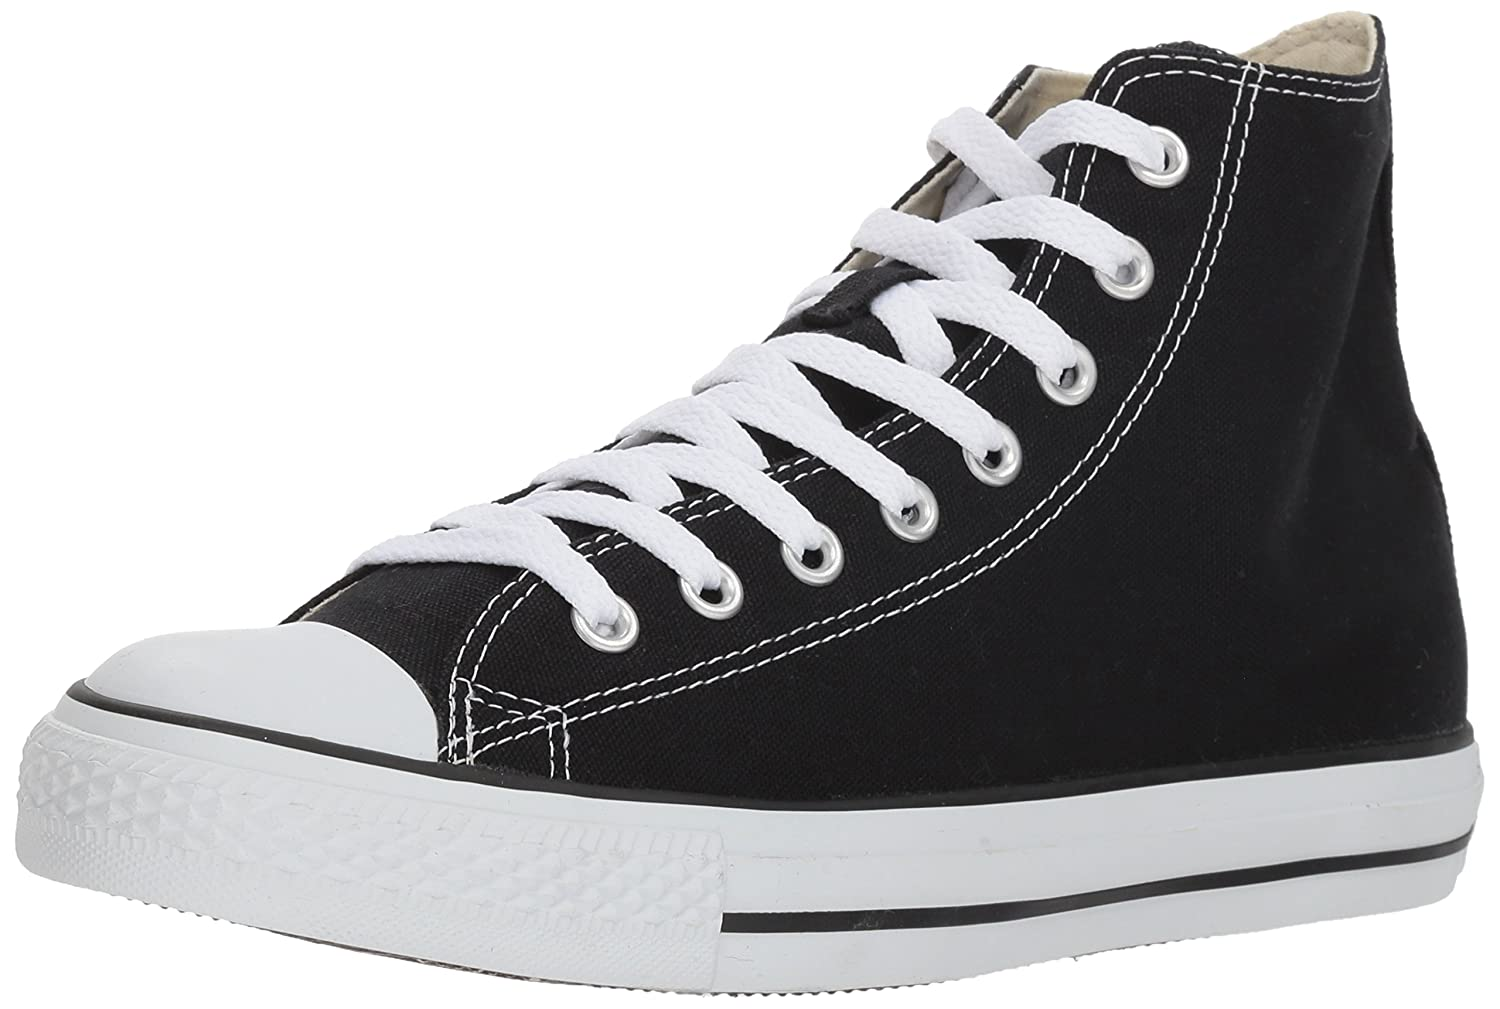 Converse Unisex Chuck Taylor All-Star High-Top Casual Sneakers in Classic Style and Color and Durable Canvas Uppers B01MFEM4H2 44 M EU / 12 B(M) US Women / 10 D(M) US Men|Black